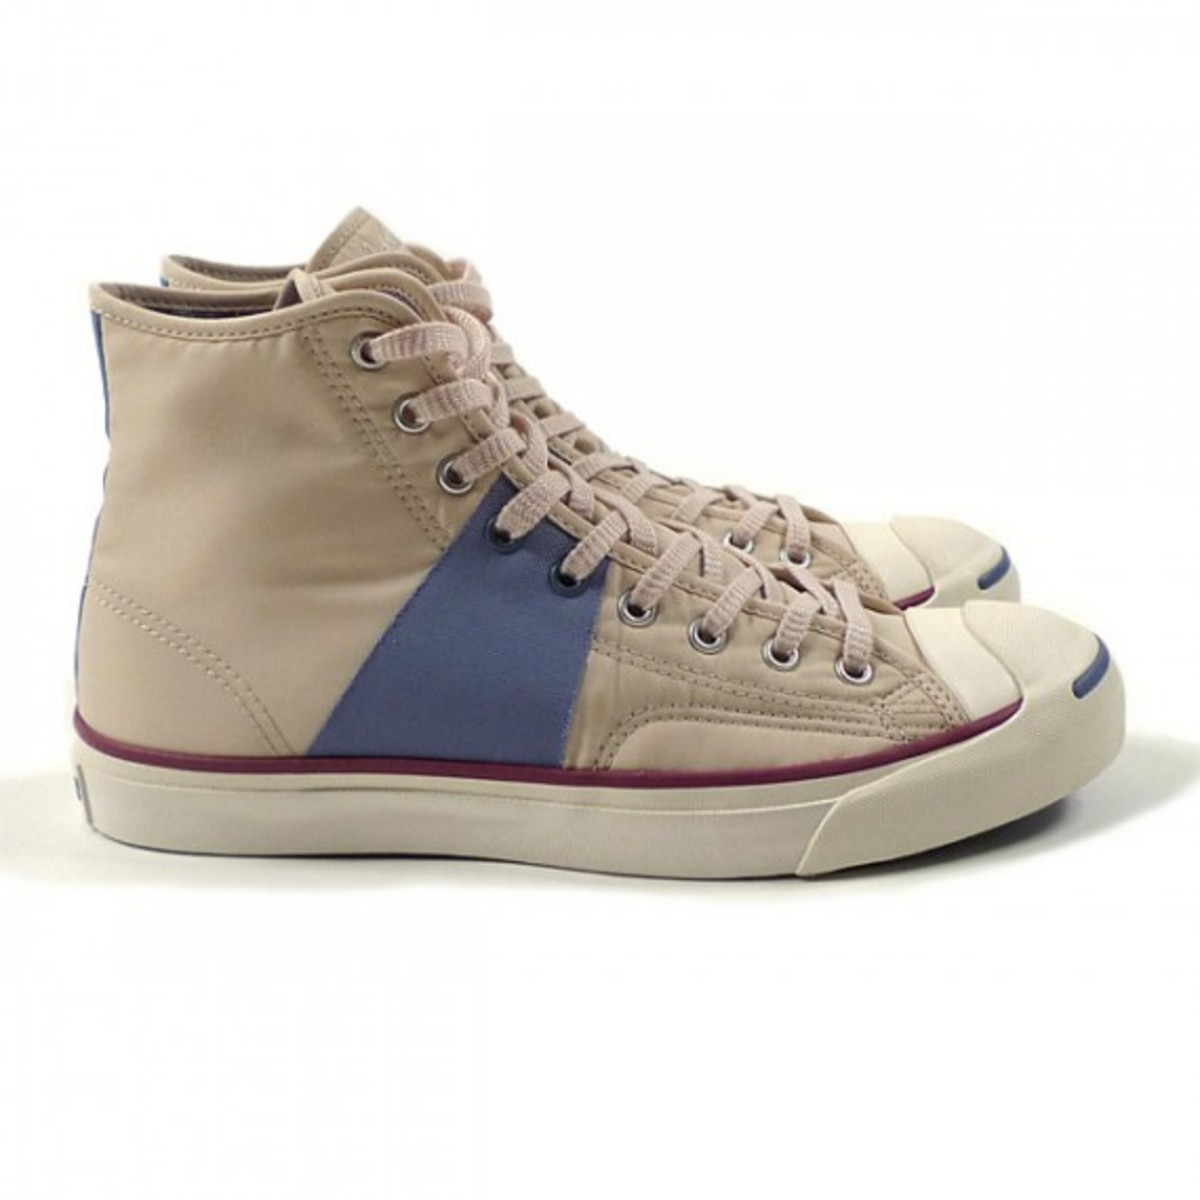 converse-first-string-jack-purcell-johnny-05